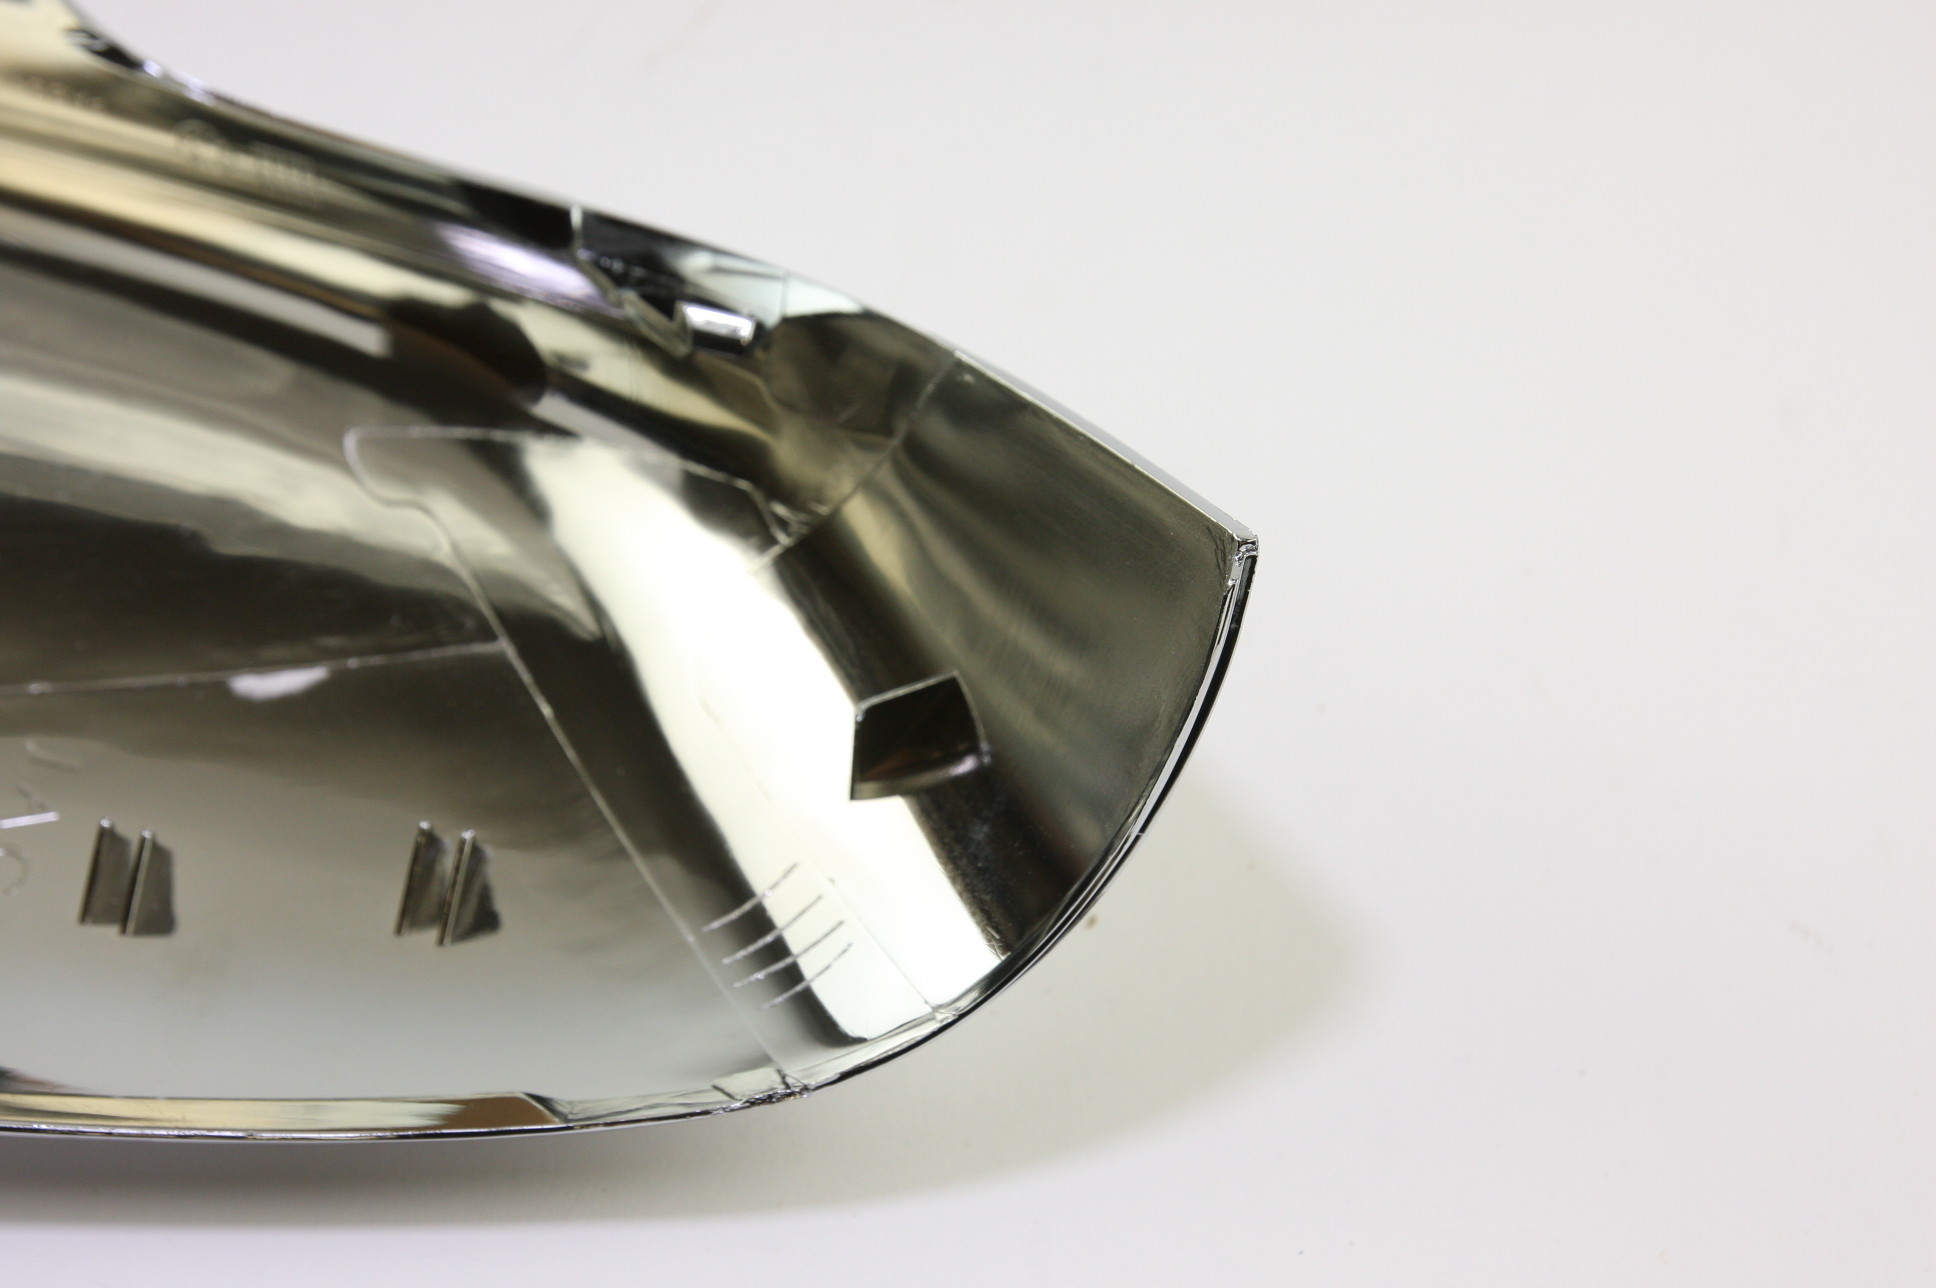 * New OEM C2D5489 Genuine Jaguar Driver Left Side Door Mirror Back Cover Chrome - image 5